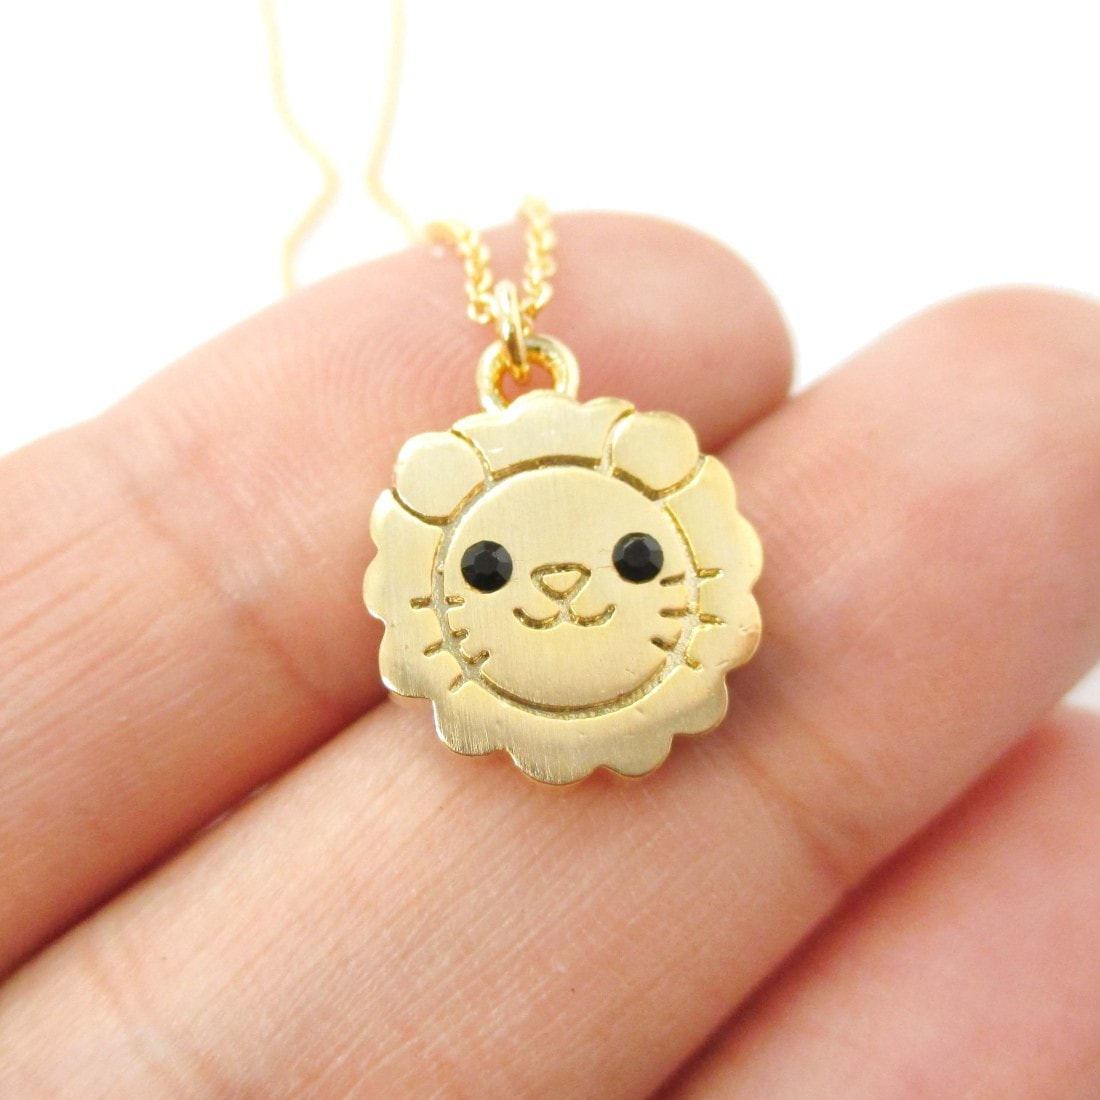 Cute Lion Shaped Adorable Animal Inspired Pendant Necklace in Gold